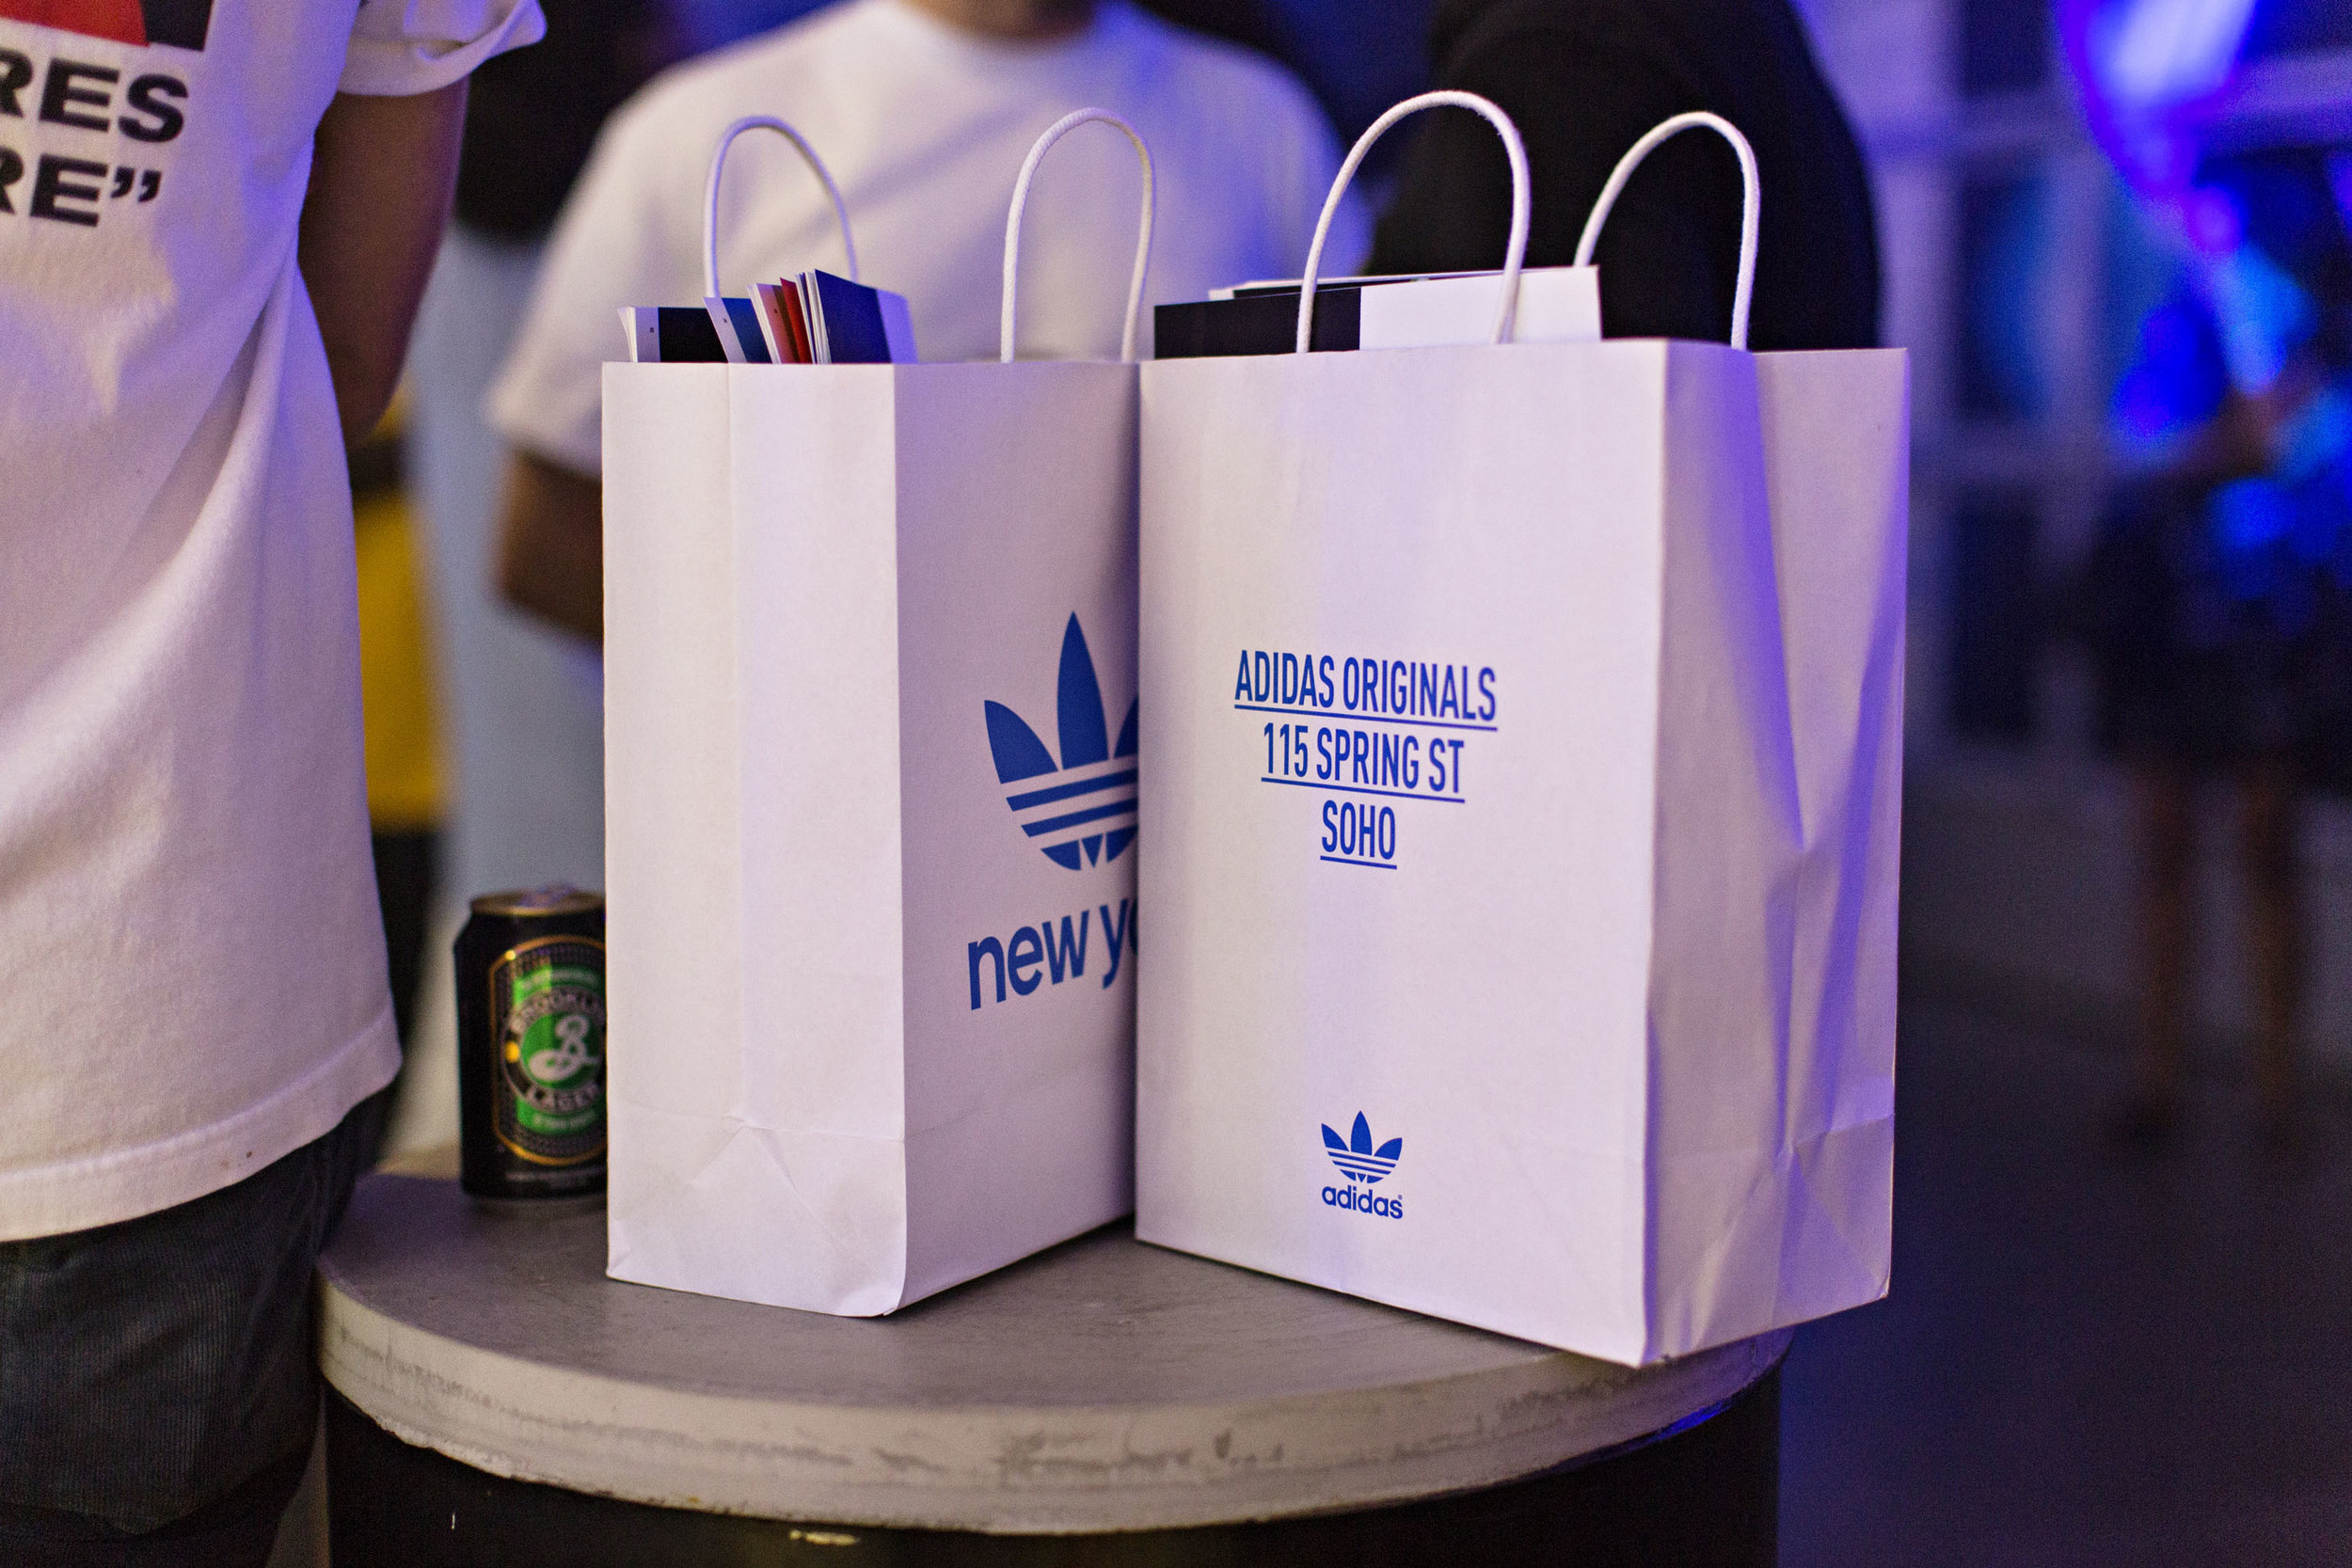 Adidas Originals, Adidas, Wooster, Spring Sneakers, Retail, Soho, New York, Party, Flagship, Invisible North, Creative, Production, Design, Experiential, Brand, Experience, Activation, Joey Bada$$, Pro Era